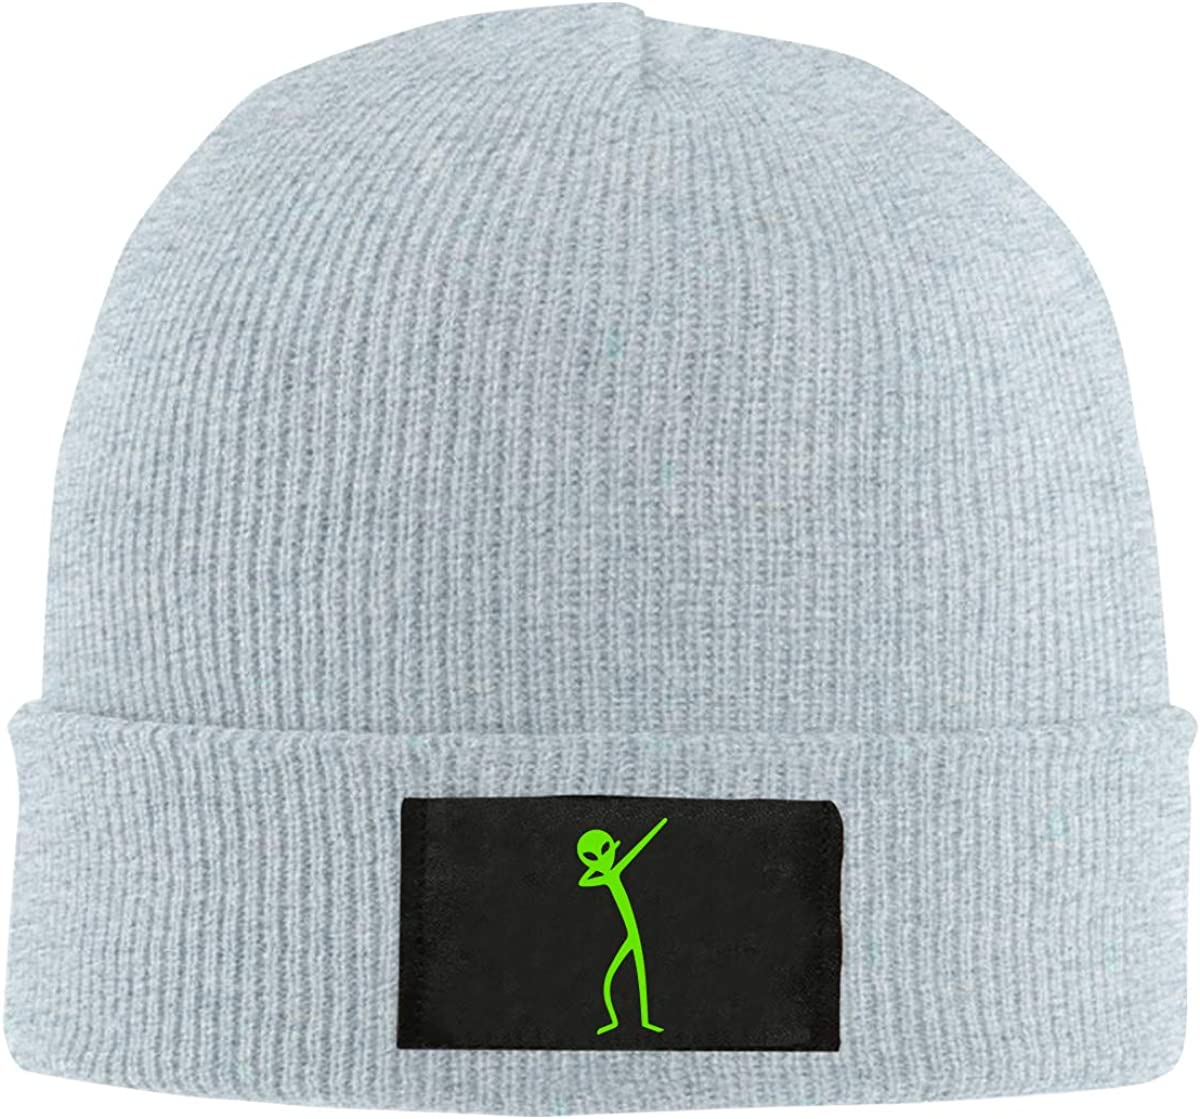 BF5Y6z/&MA Mens and Womens Dabbing Alien Knitting Hat 100/% Acrylic Stretch Beanies Cap